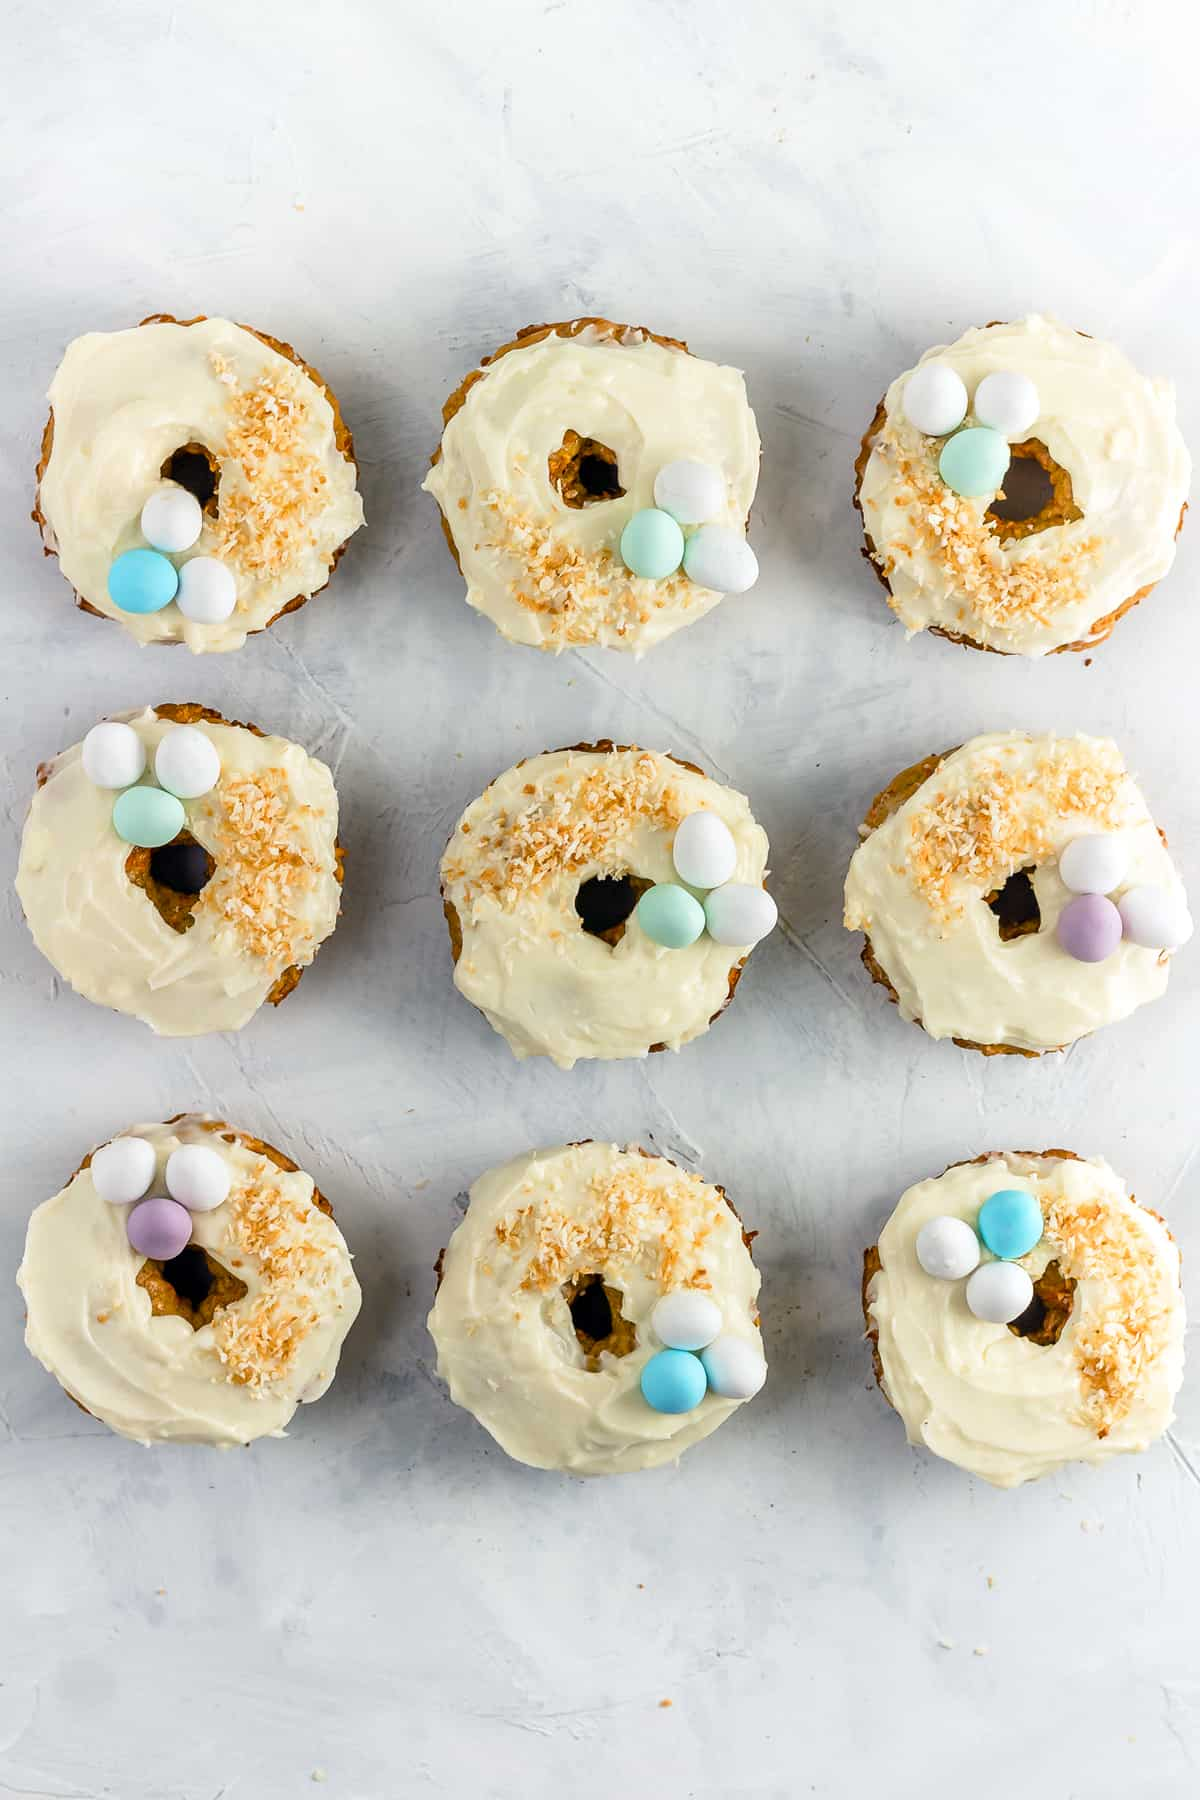 Baked Carrot Cake Donuts with Cream Cheese Frosting - perfect for Easter brunch!